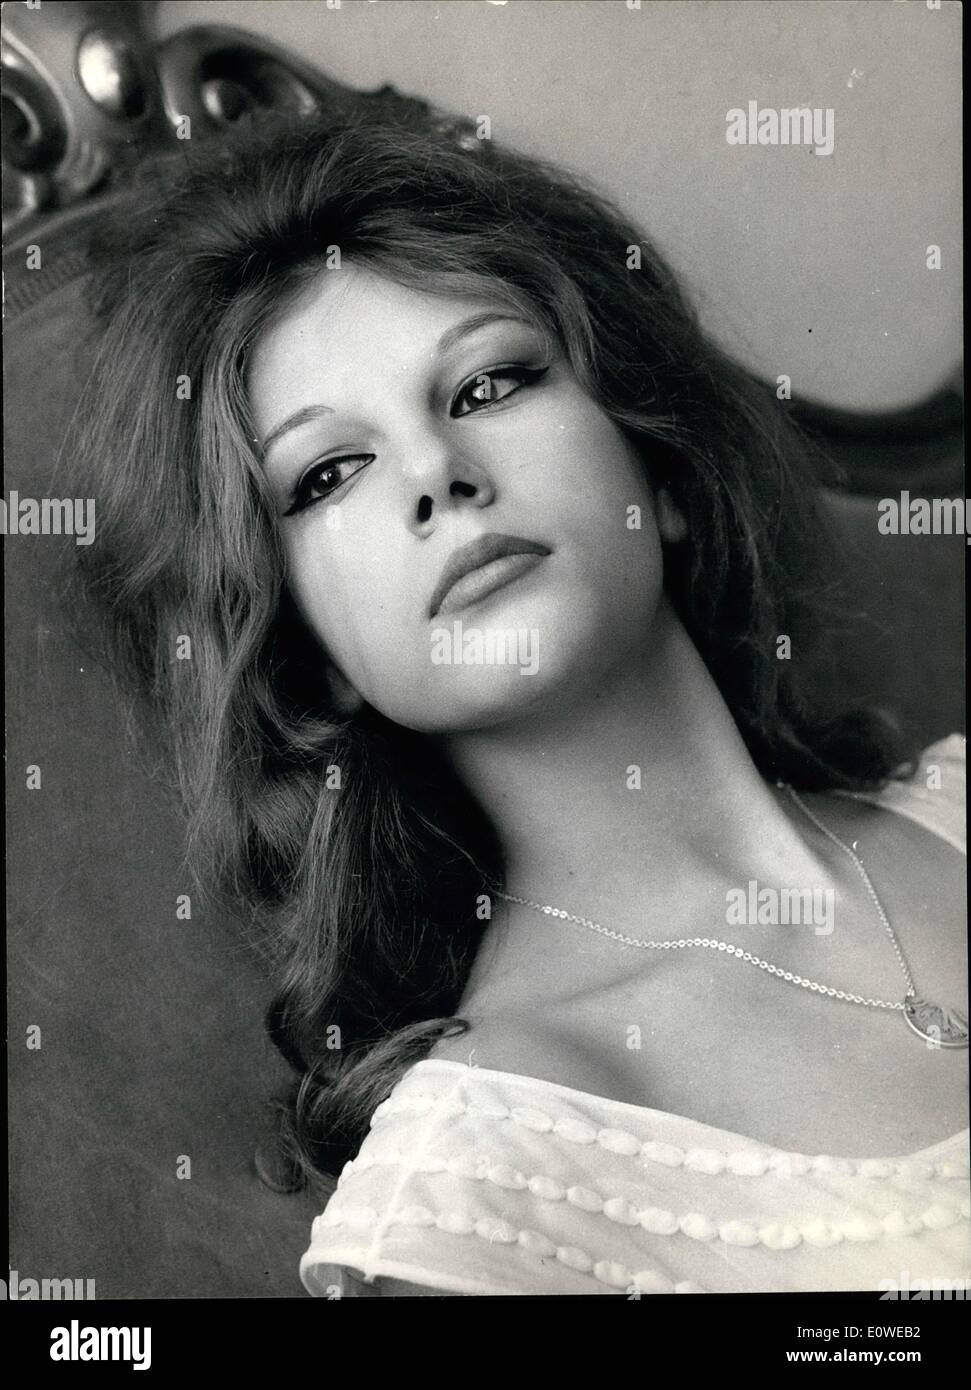 Actress Stephanie Sandrelli. Filmography, a photo of an Italian beauty